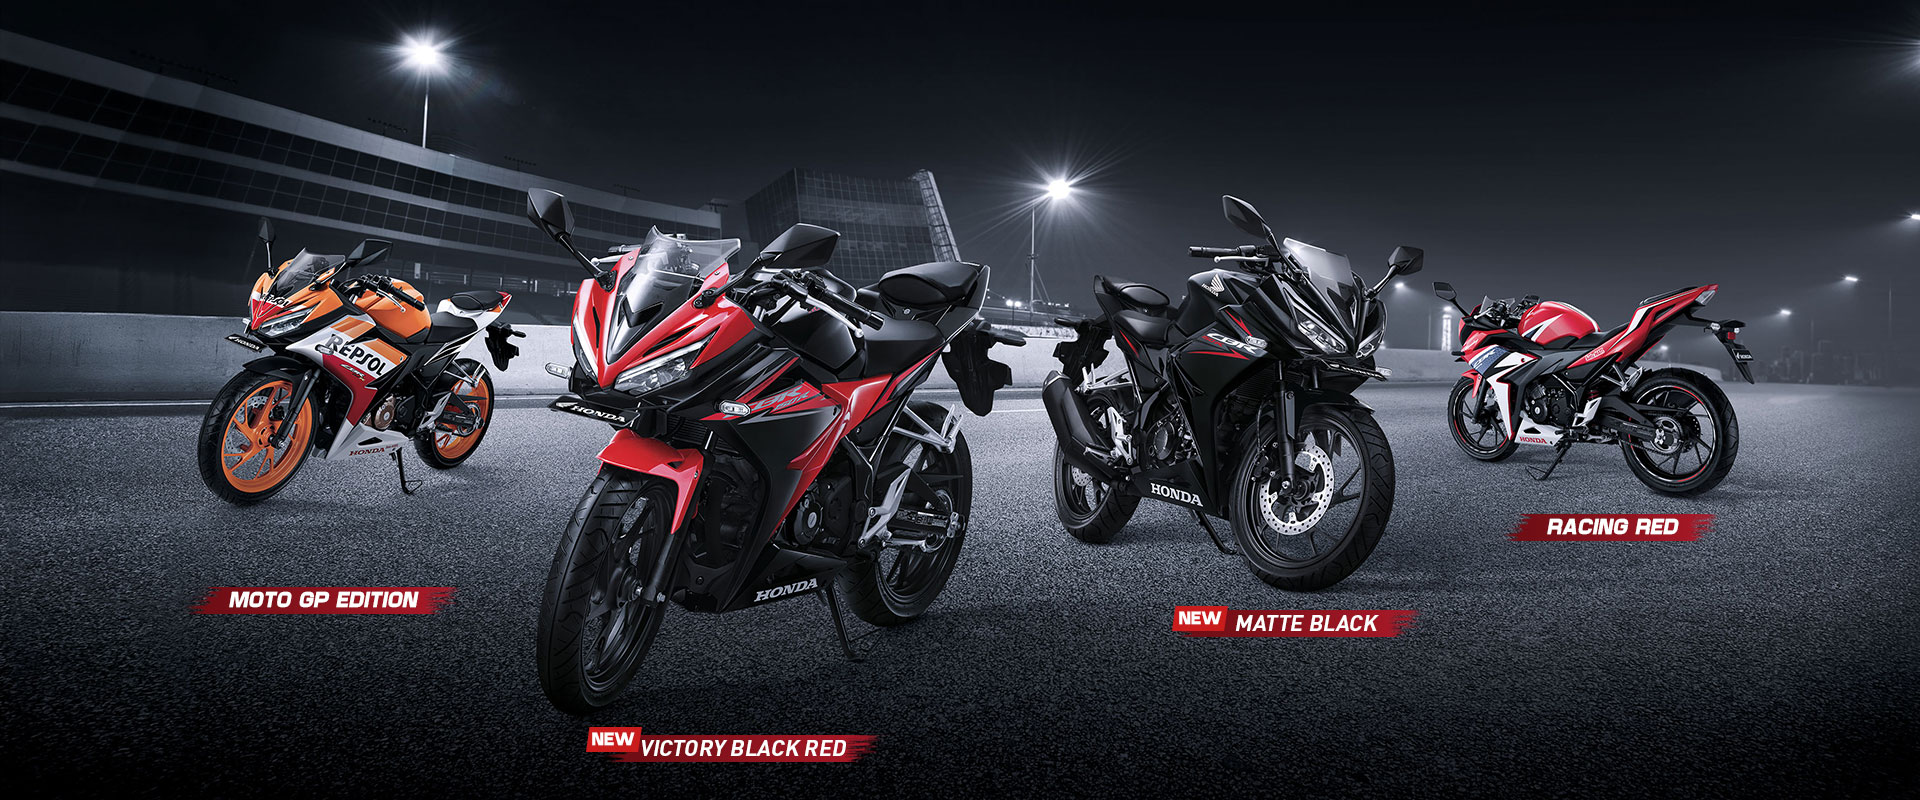 The new 2018 honda cbr150r has landed in indonesia and similar to the 2017 iteration the motorcycle continues to feature an all led headlight and